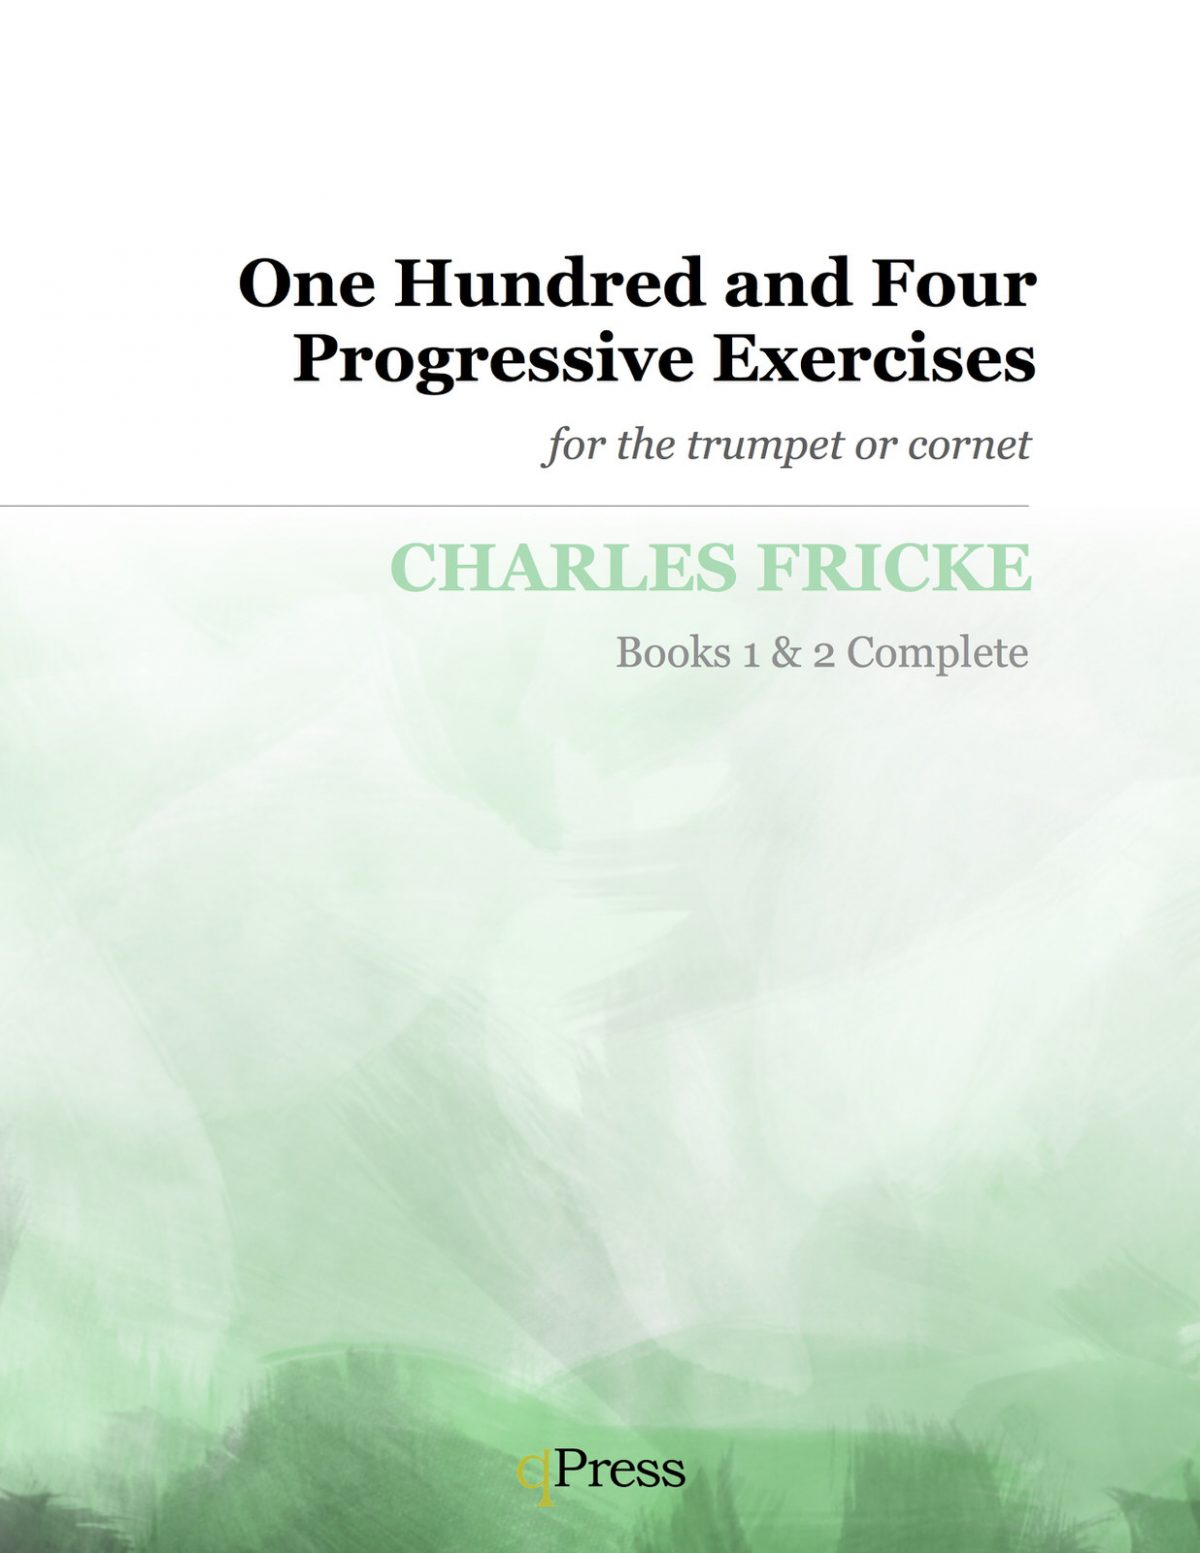 fricke-charles-104-progressive-exercises-for-wind-instruments